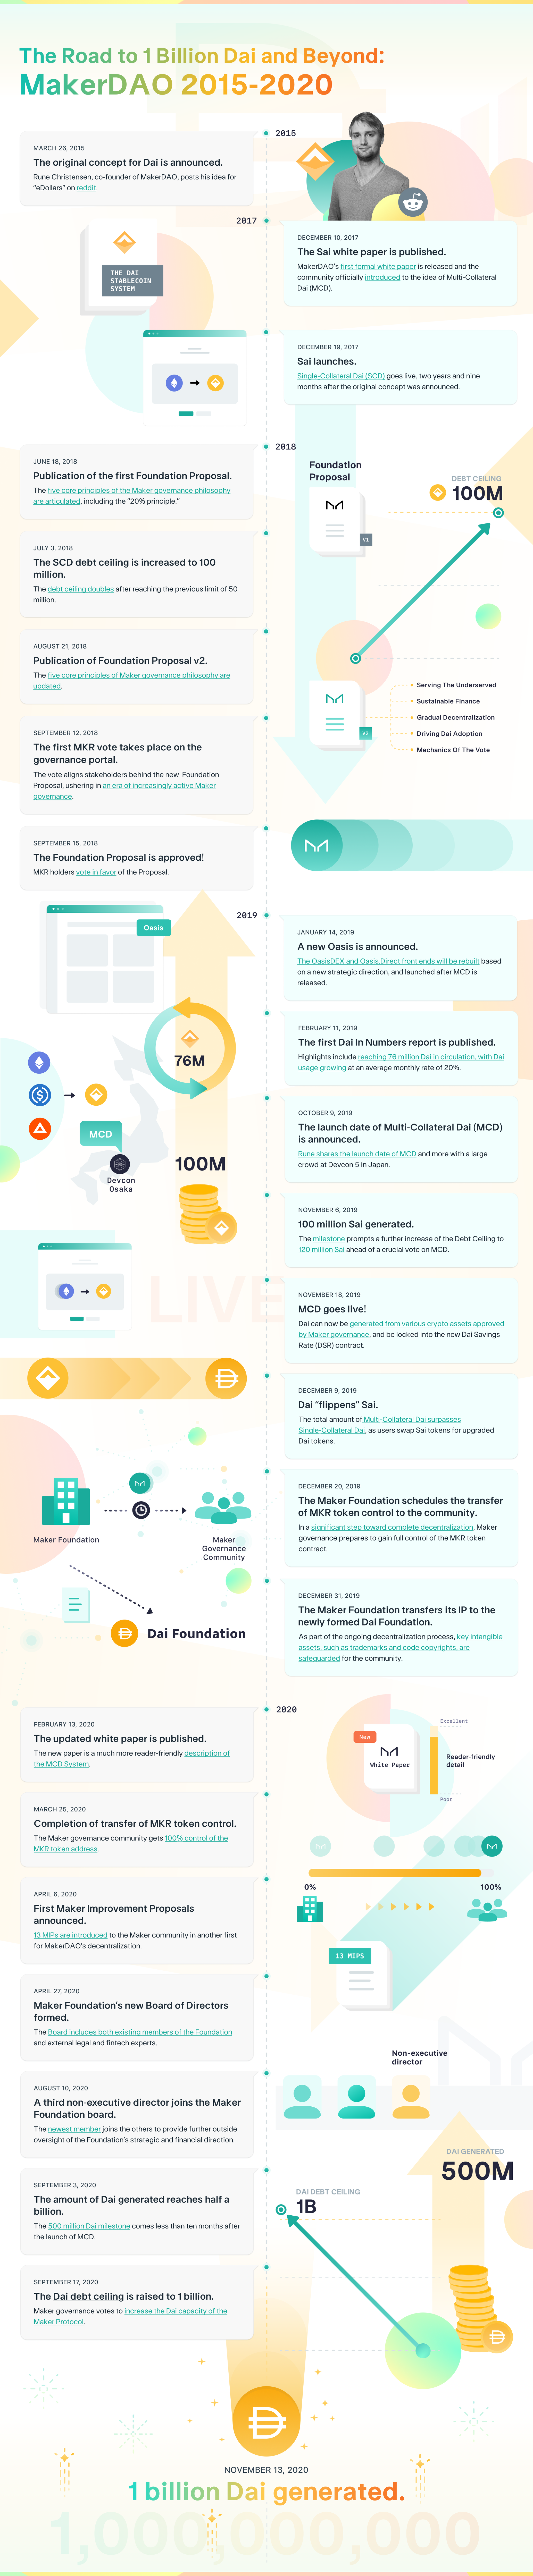 The one billion Dai milestone is proof that MakerDAO is helping people around the world gain more control over their finances.